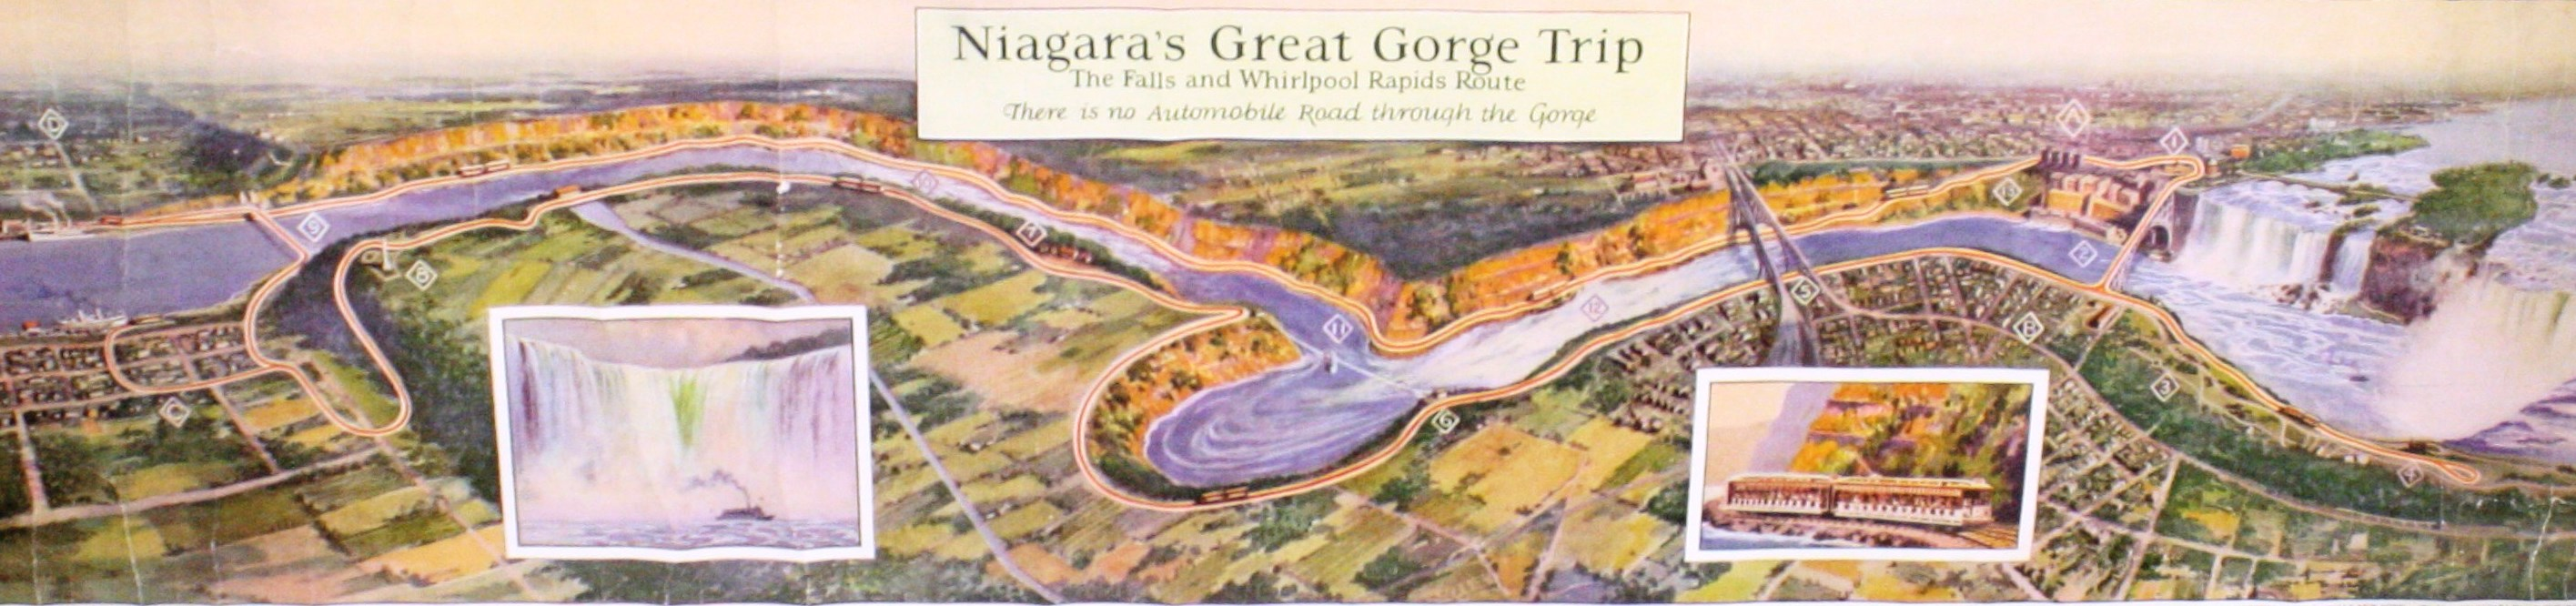 Map of the Great Gorge Trip around Niagara Falls